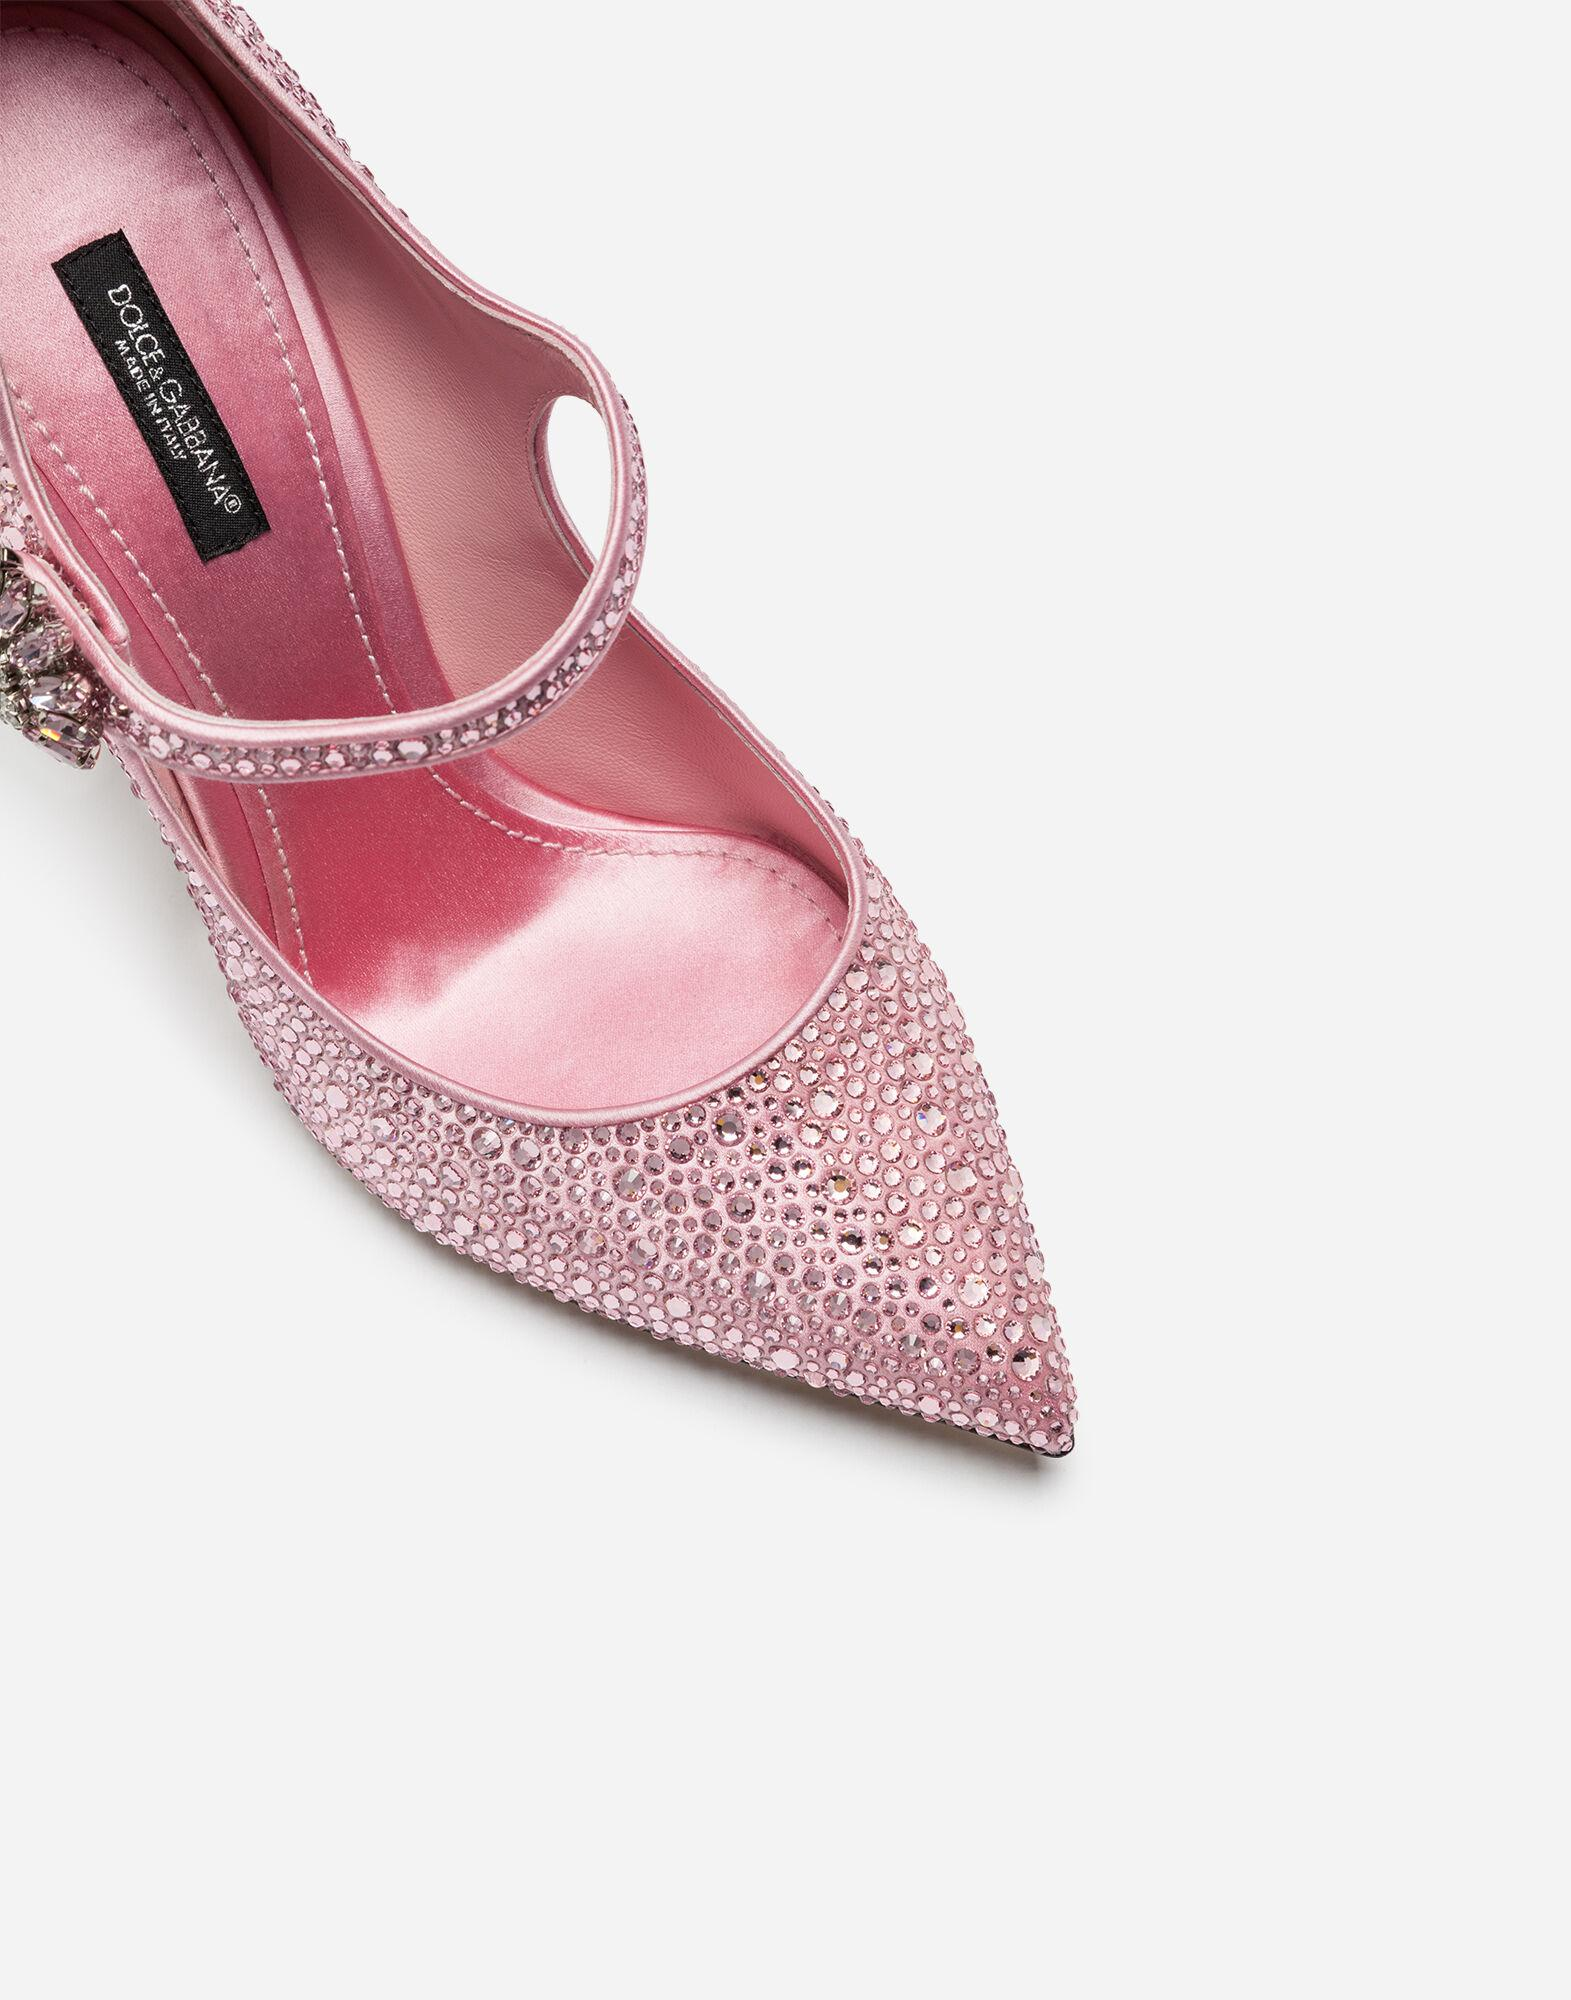 Satin Mary Janes with crystals 1